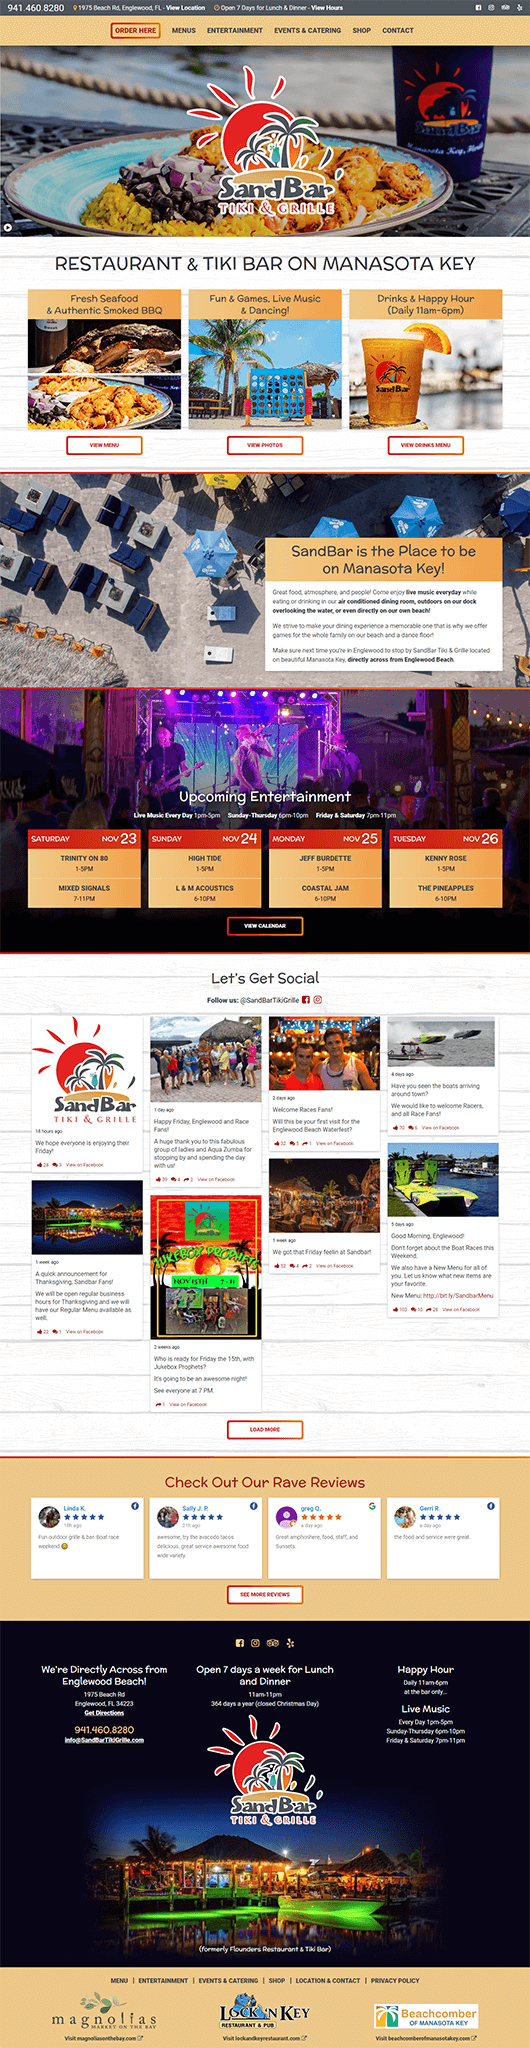 SandBar Tiki & Grille website design